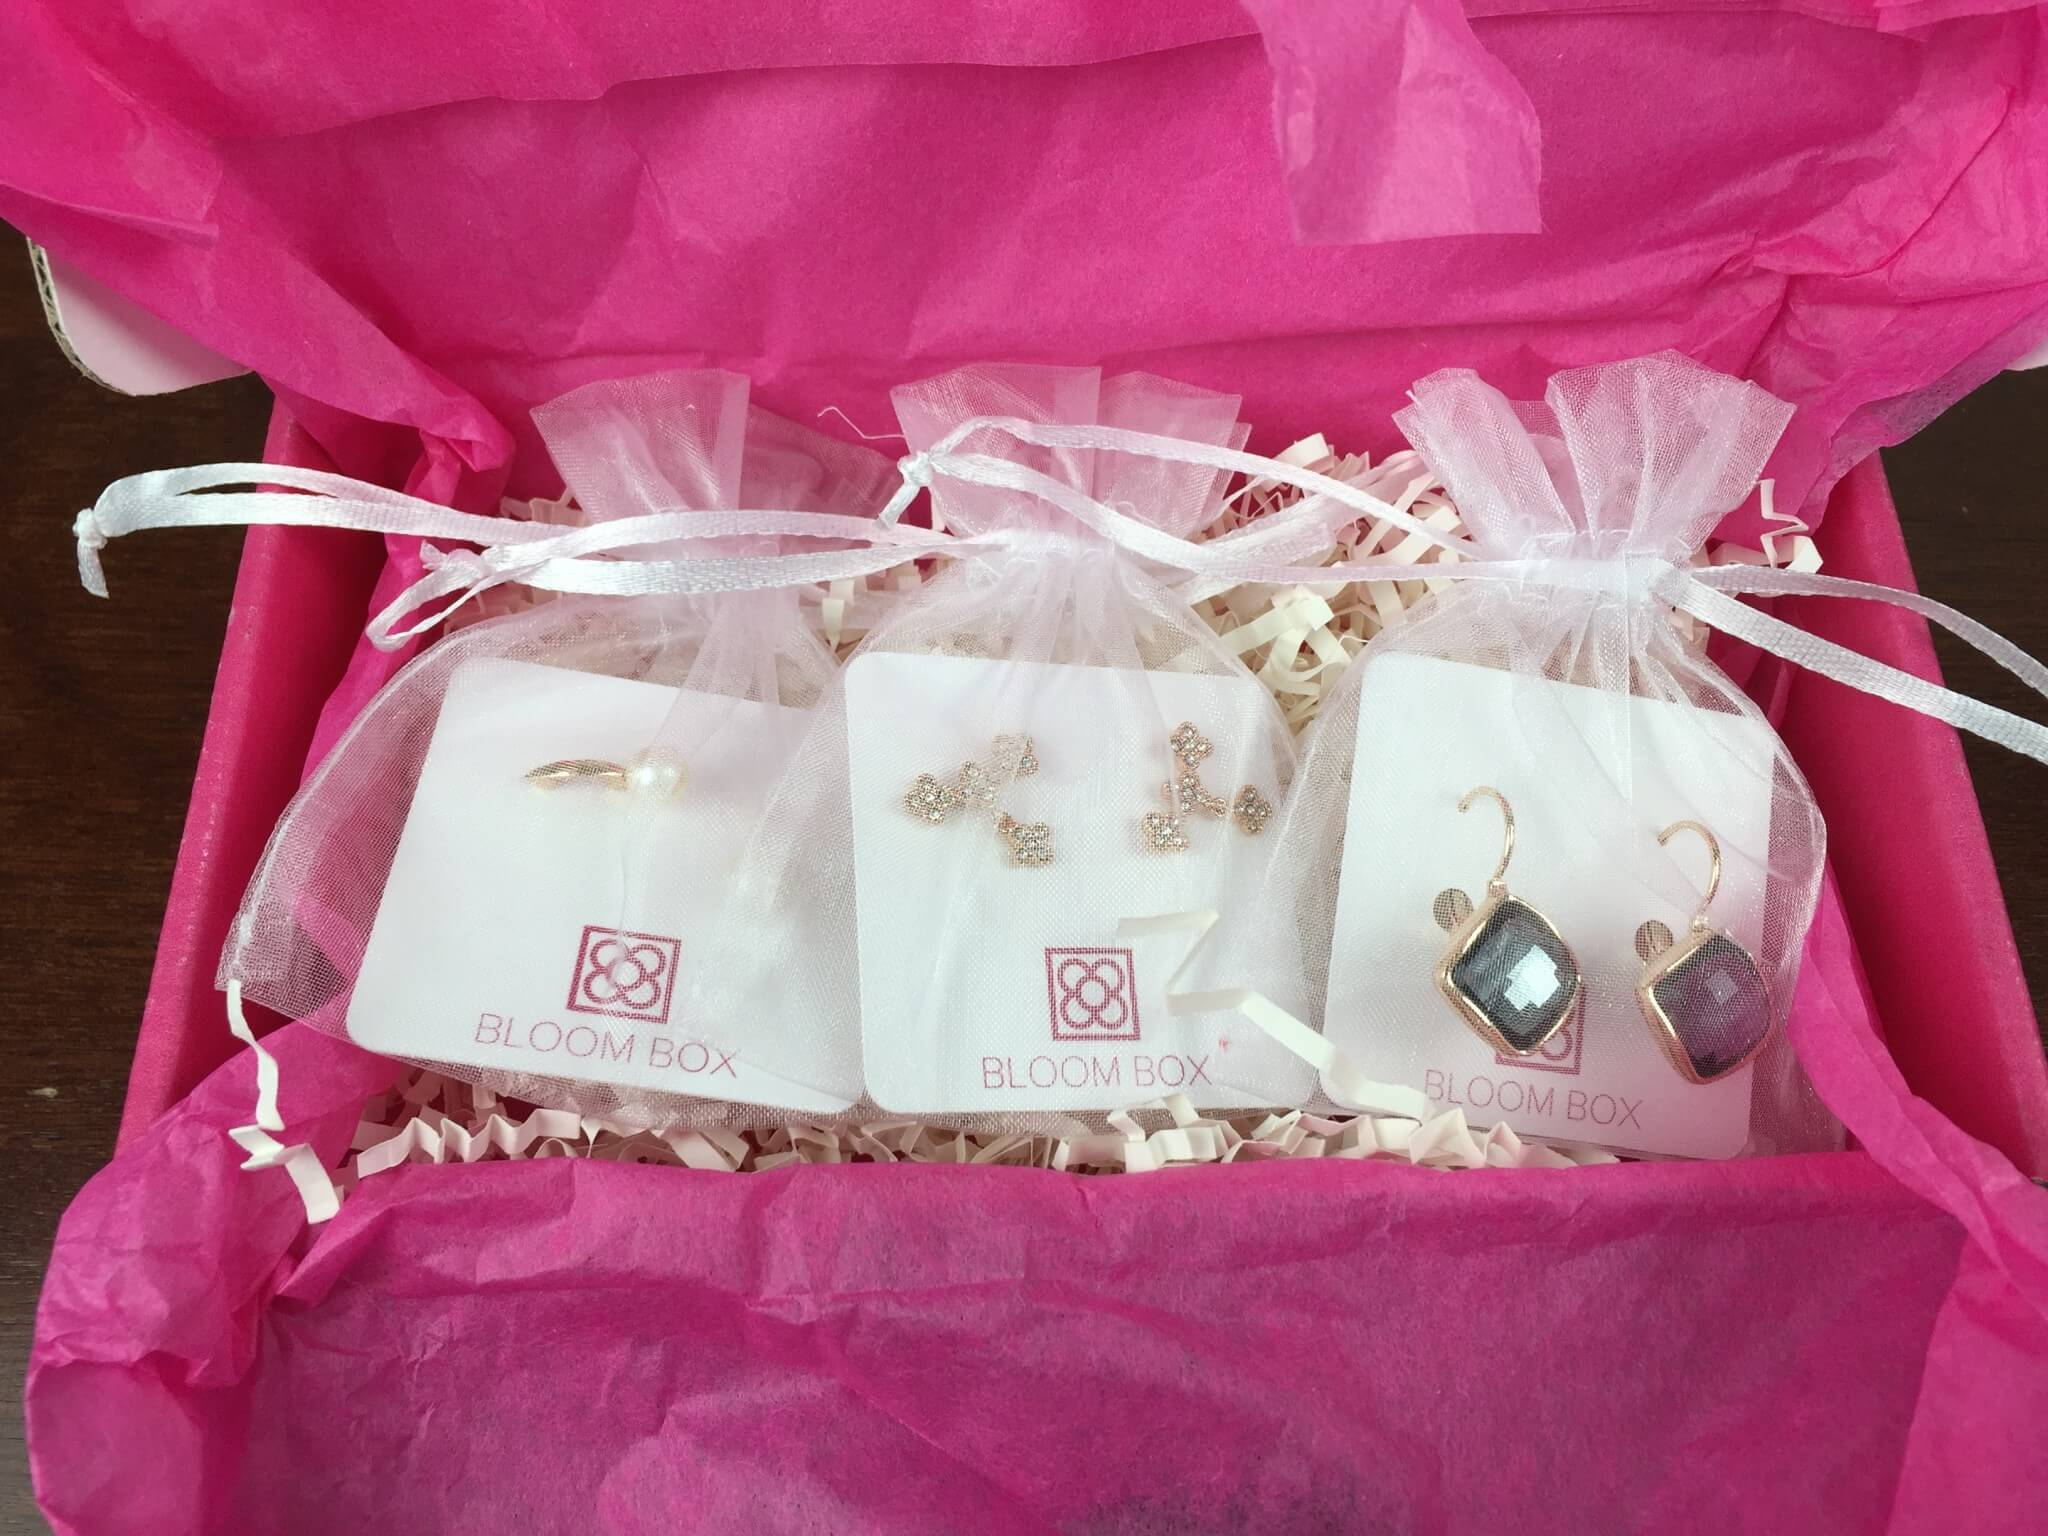 Bloom Box December 2015 earrings